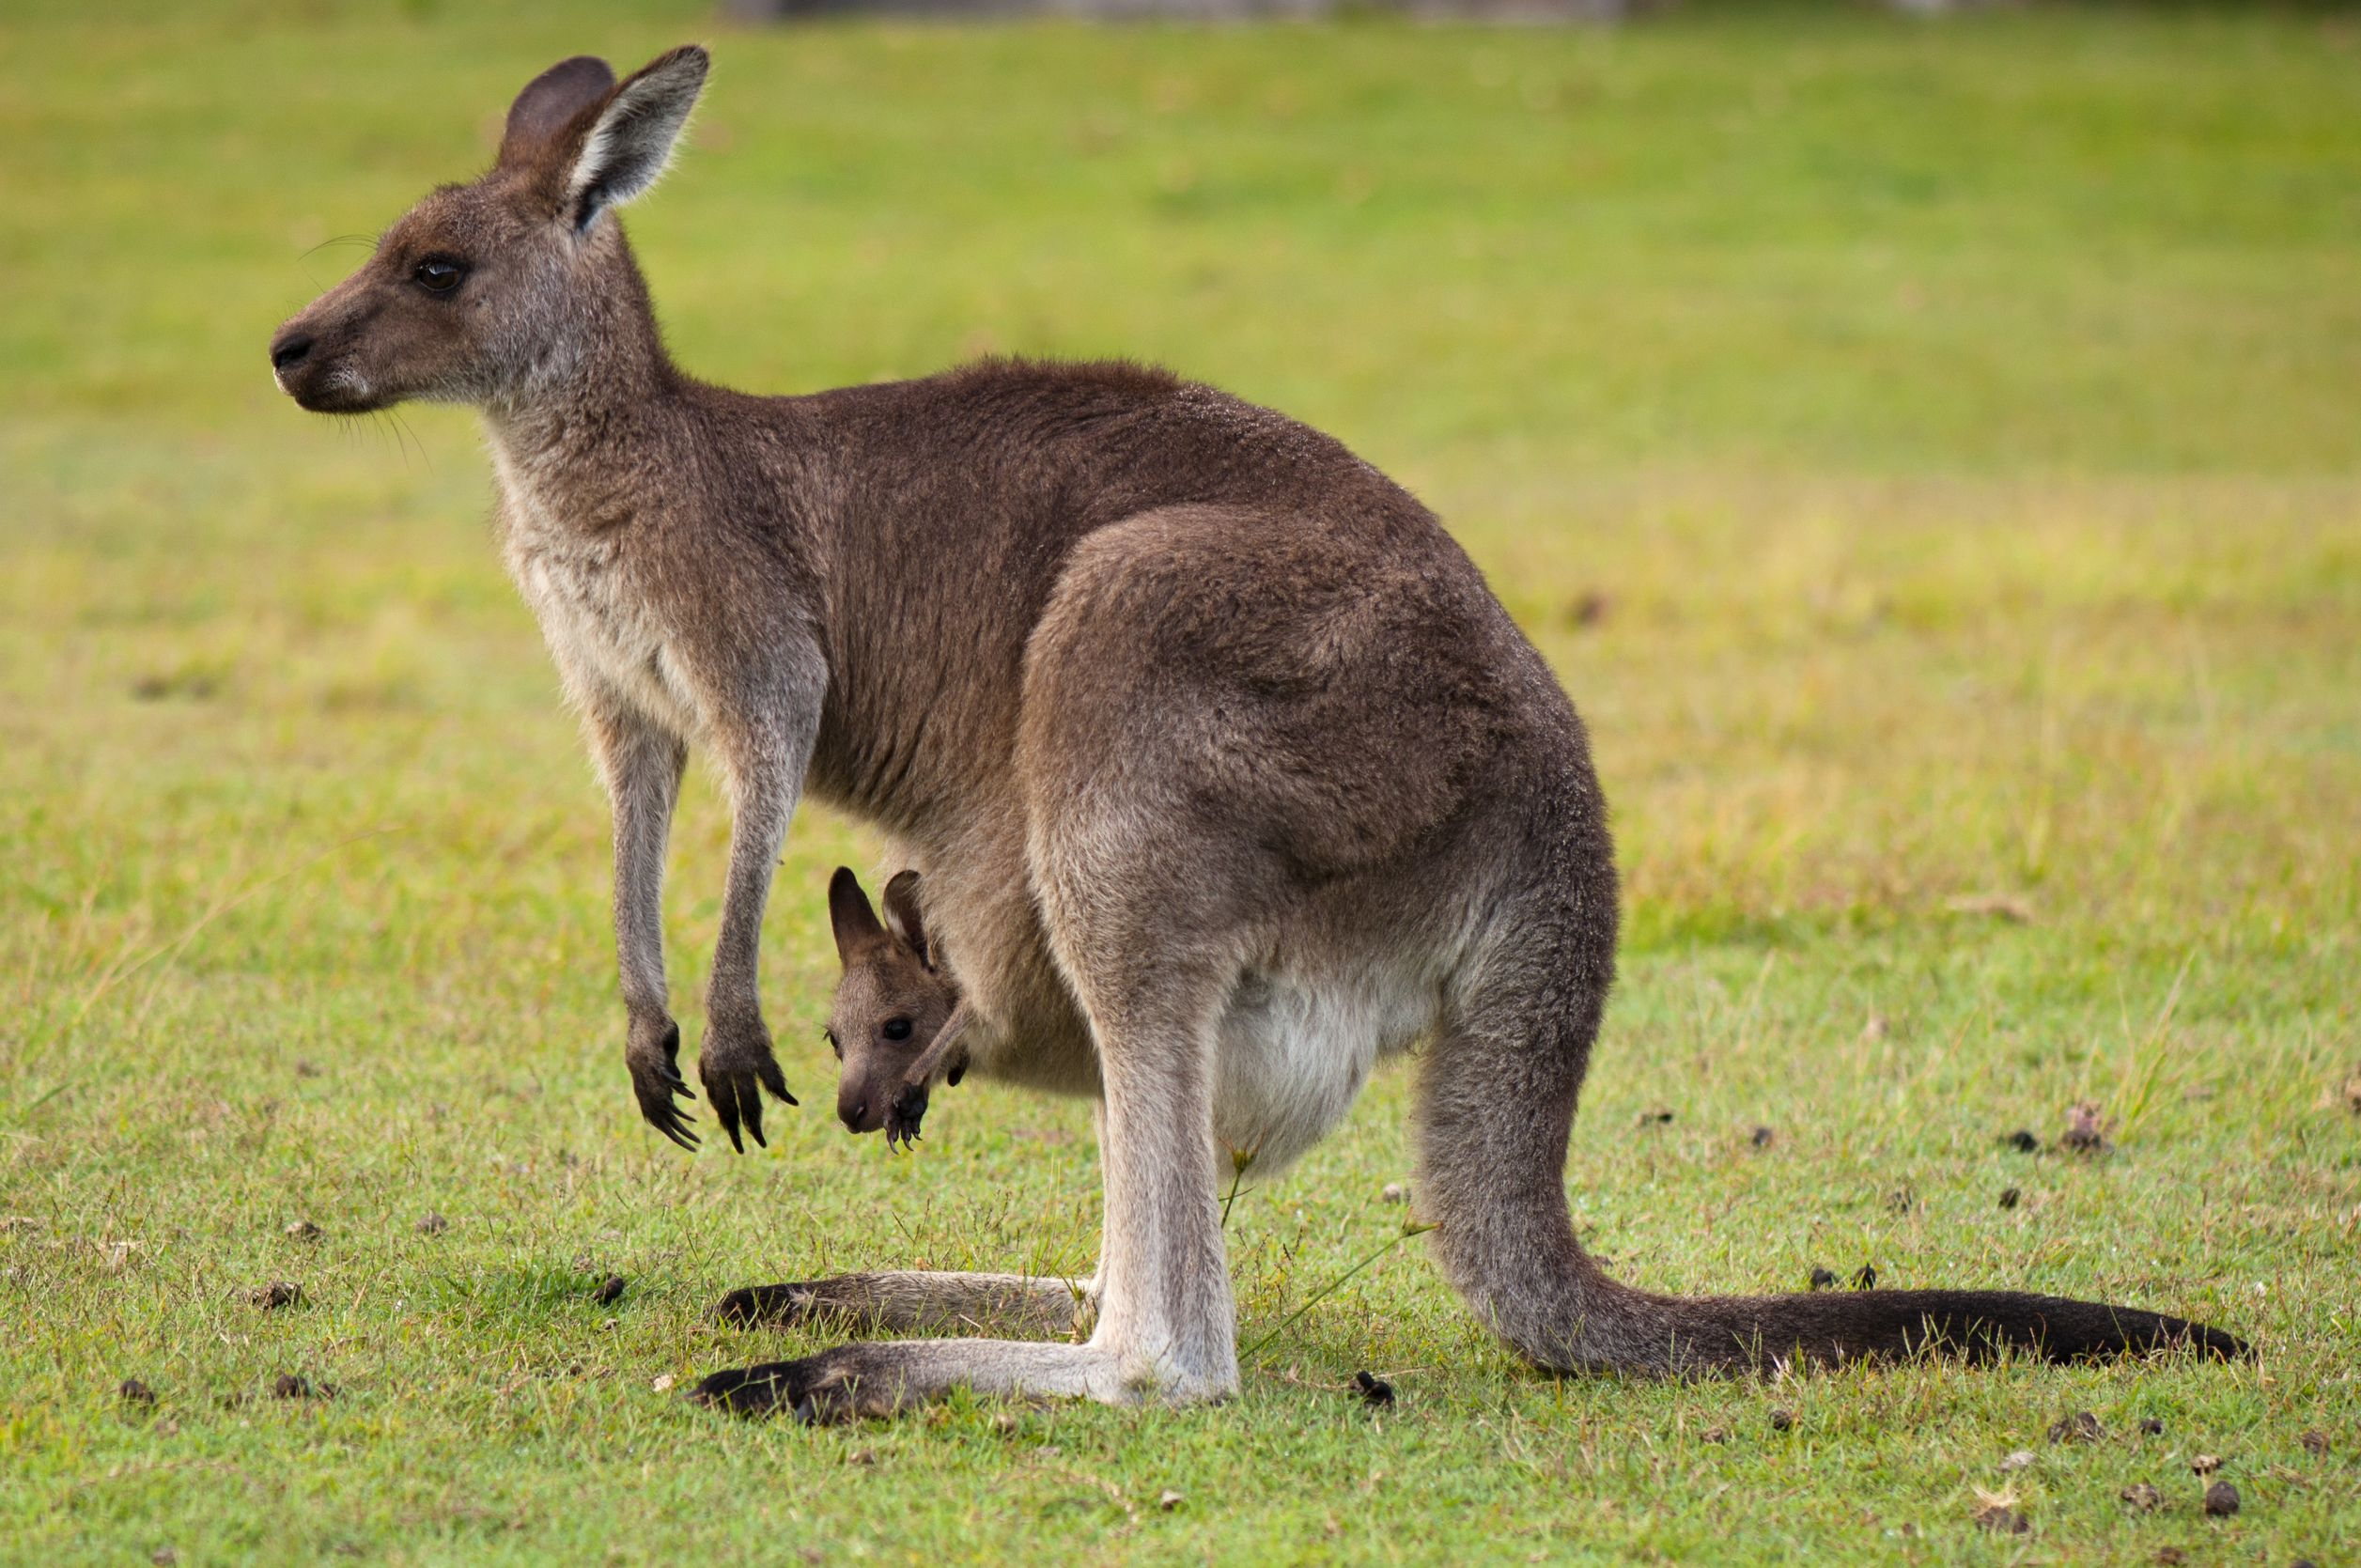 australia kangaroo and baby 123rf